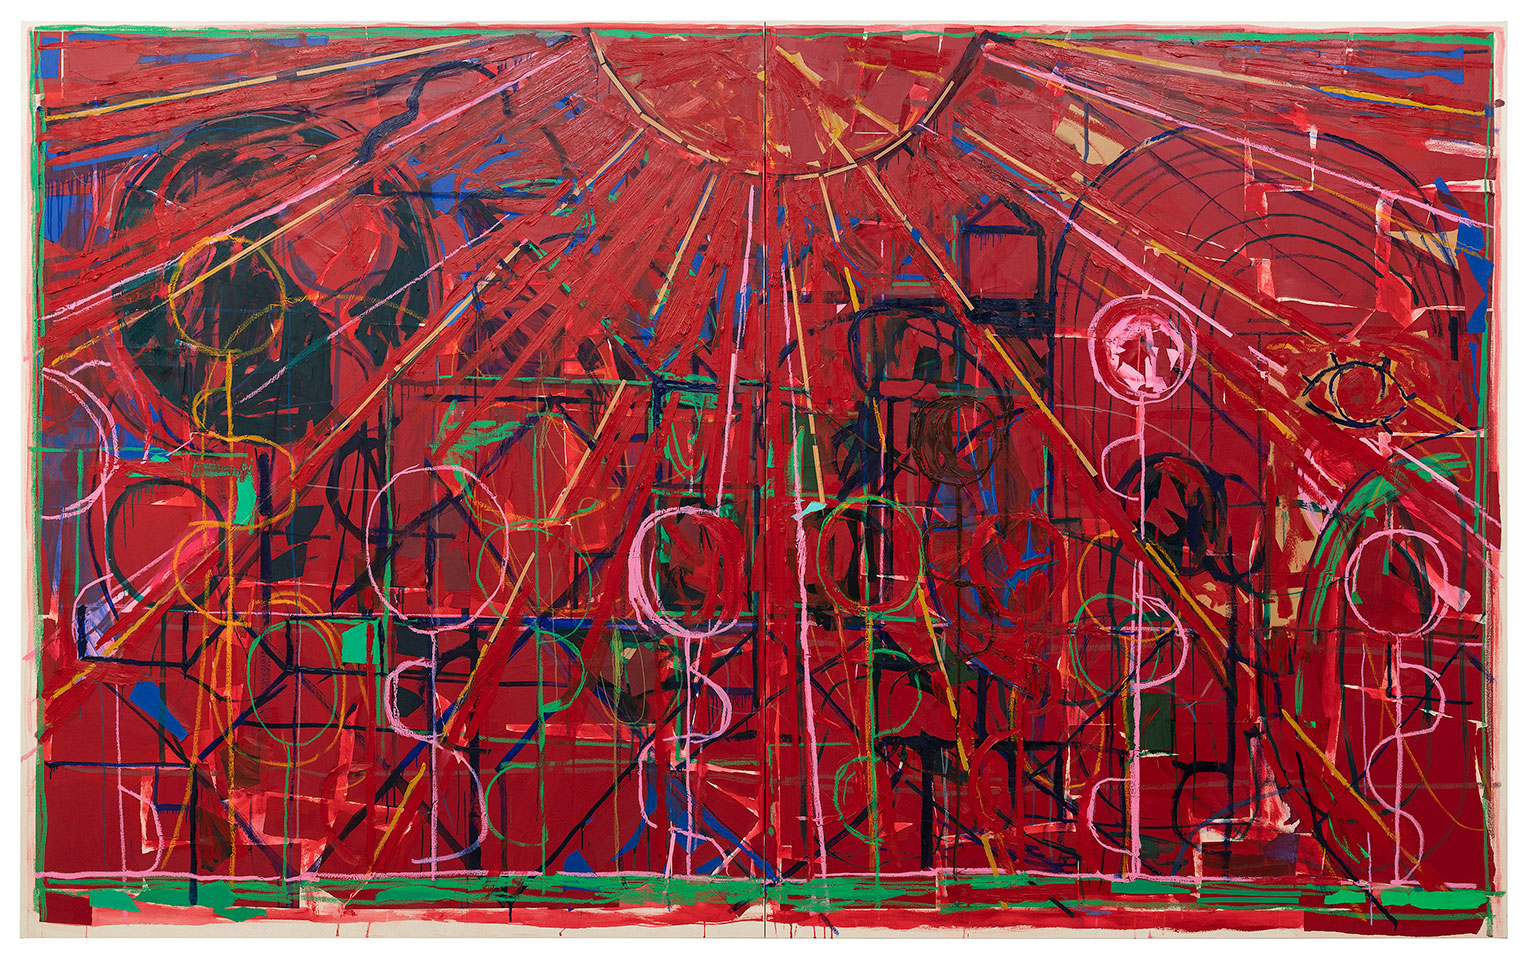 <b>Title:</b>Large Sun (Red)<br /><b>Year:</b>2018<br /><b>Medium:</b>Oil paint, oil stick, crayon, acrylic and paper collage on canvas<br /><b>Size:</b>210 x 340 cm